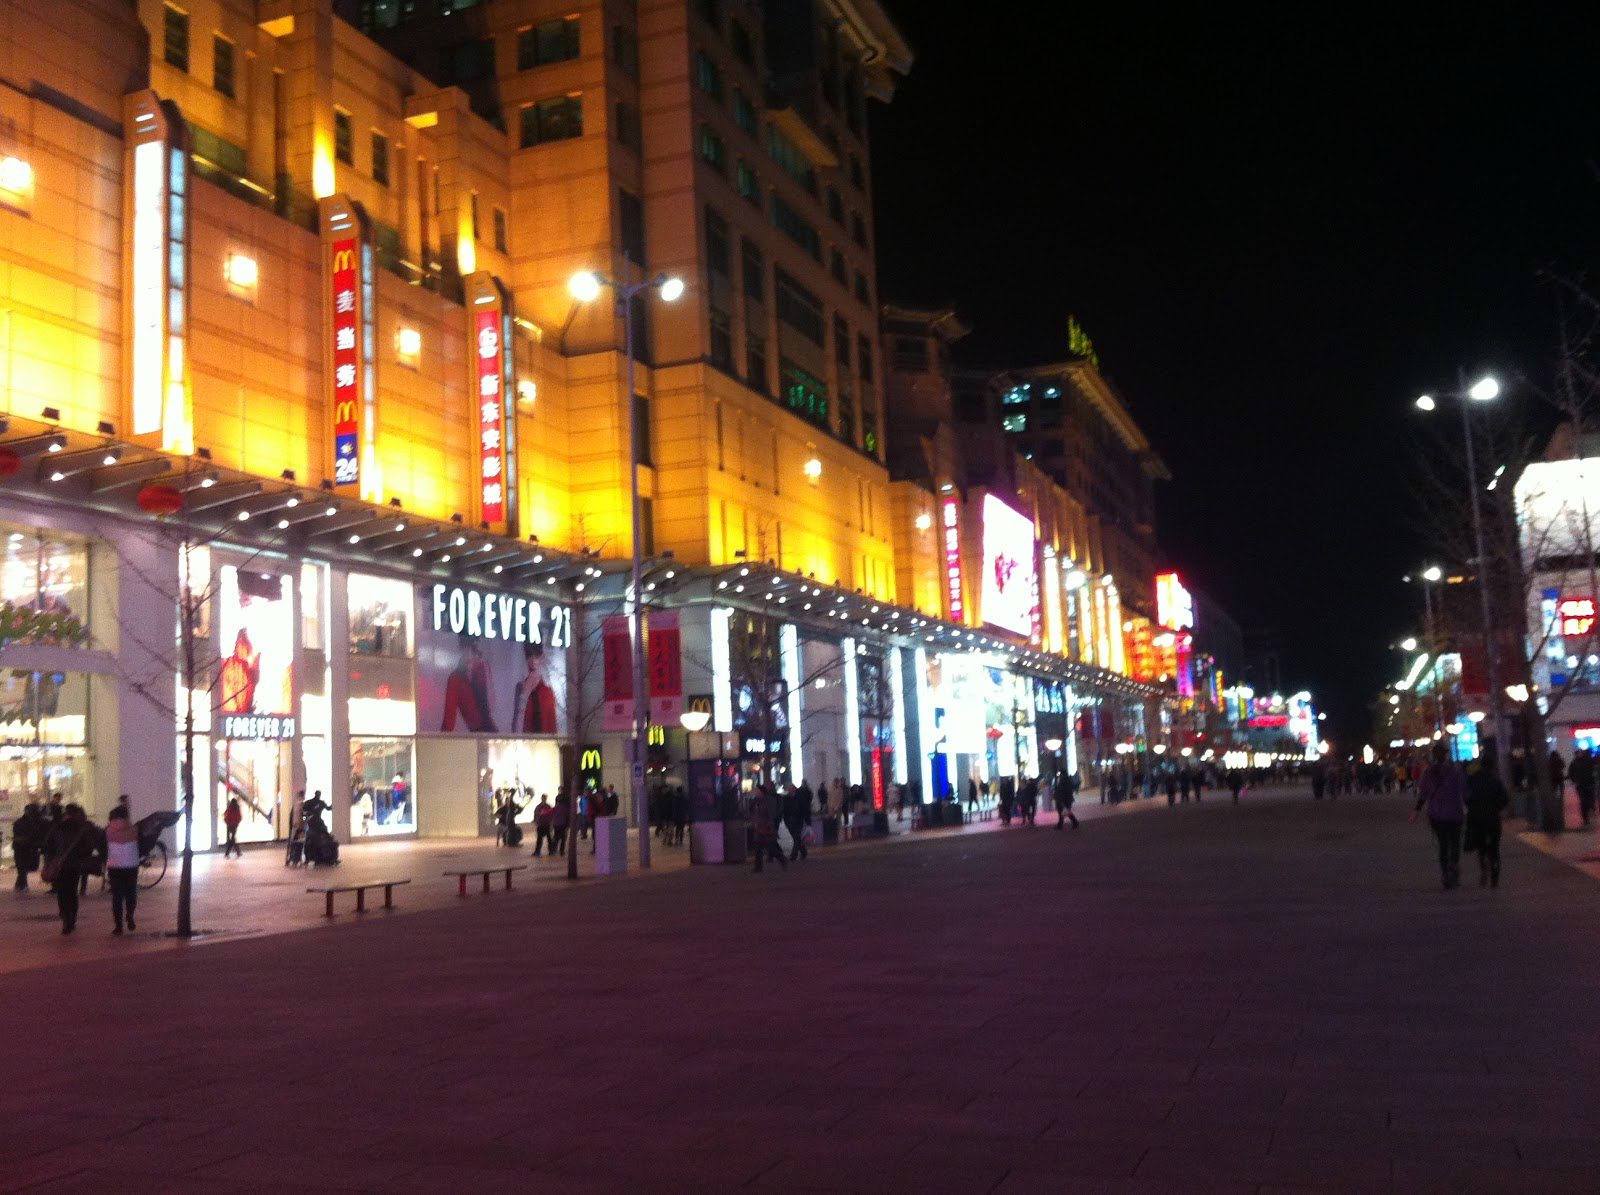 It isn't unusual to see American companies in  shopping areas for locals, not just tourists, in places like Beijing.